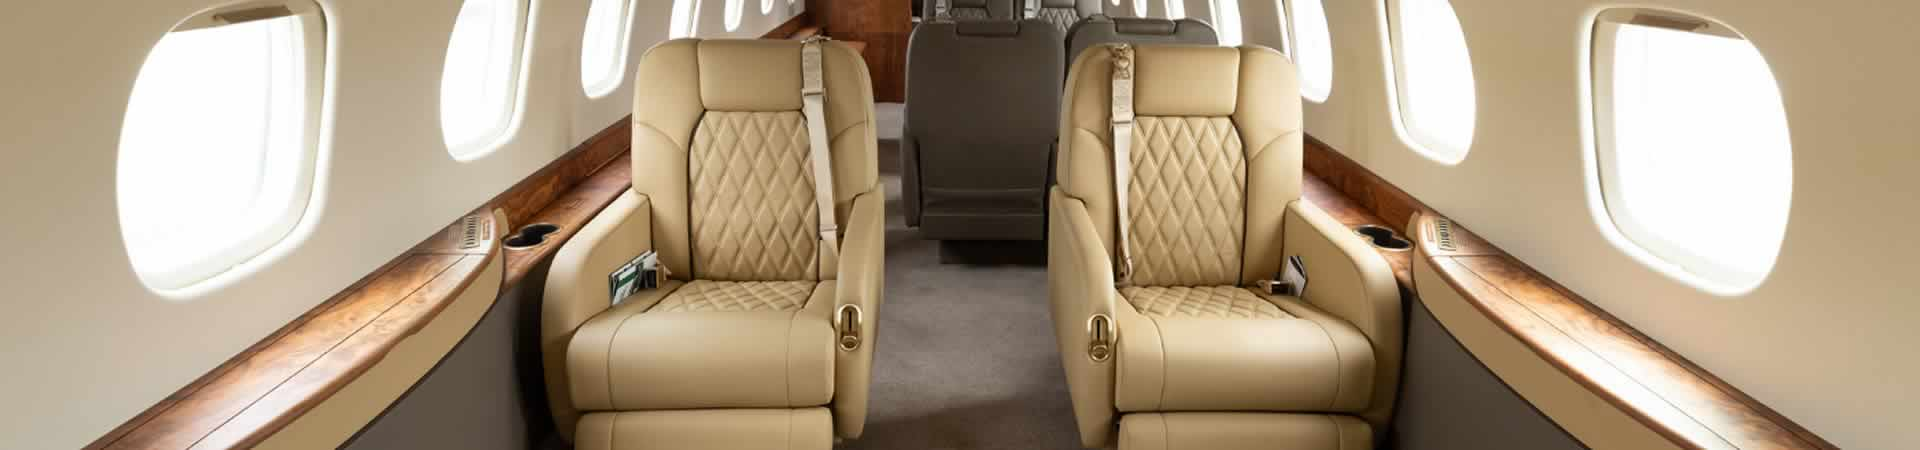 Private Jet Slider – Interior